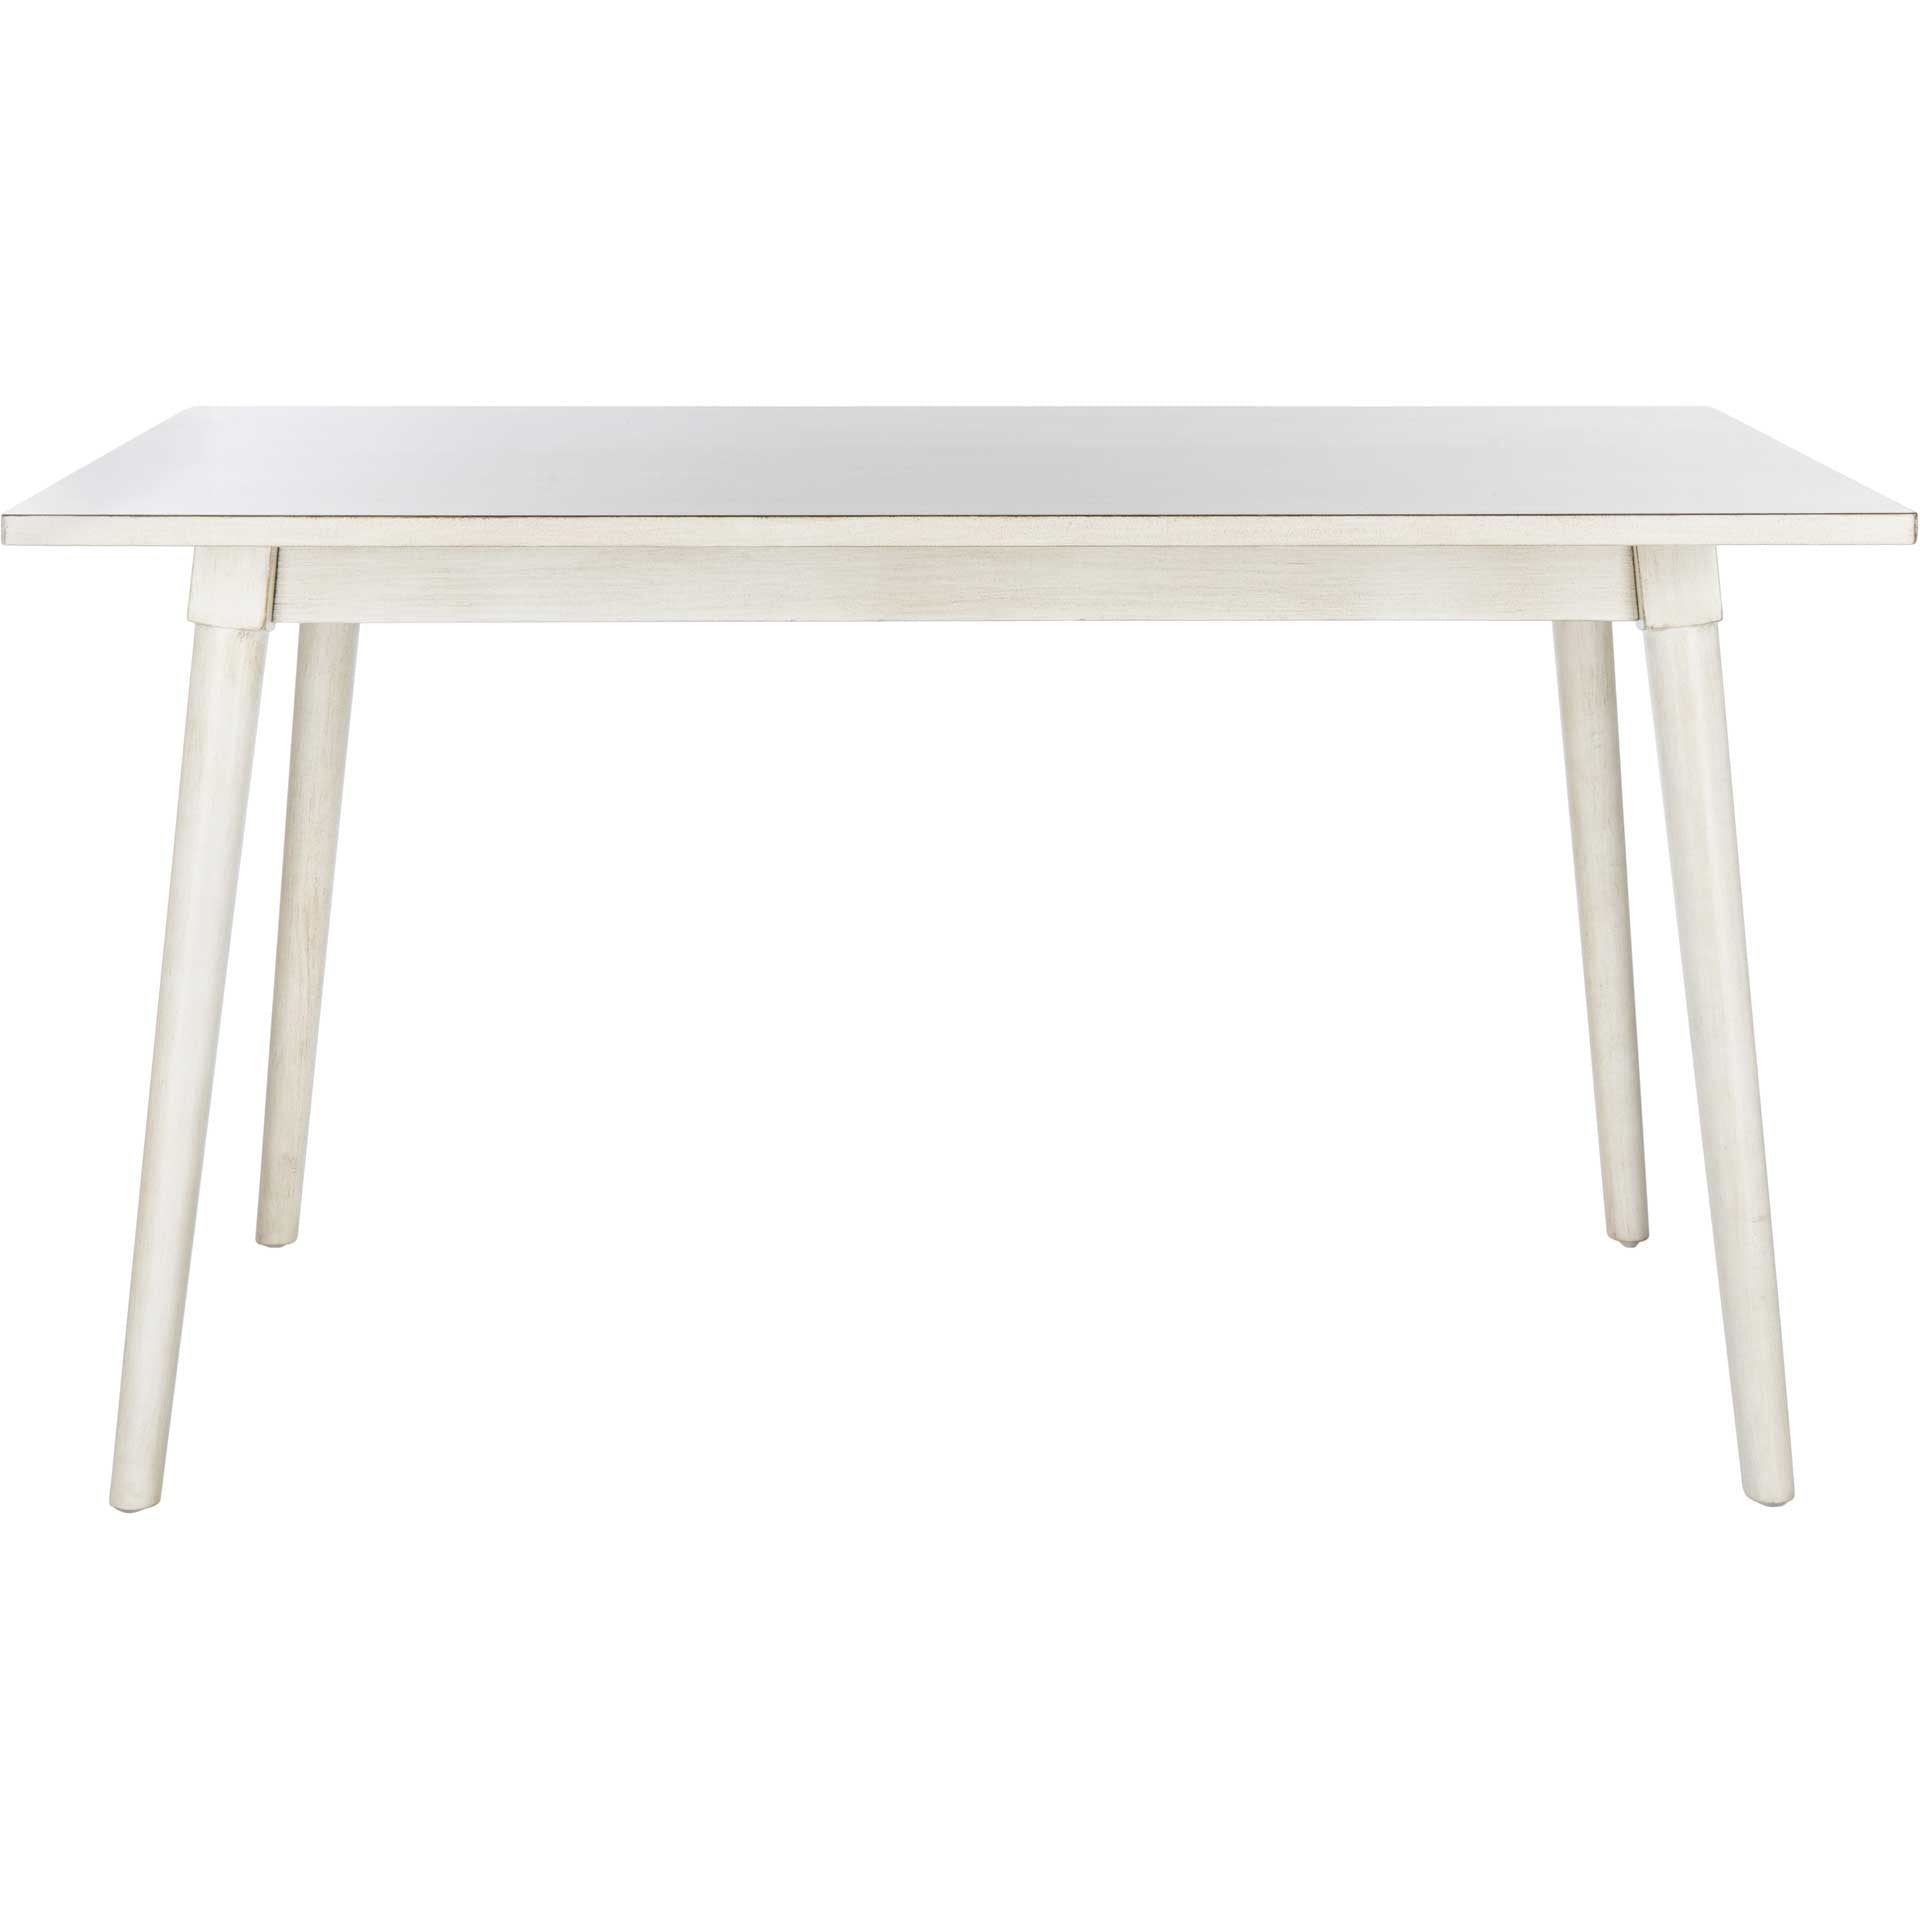 Tiana Rectangle Dining Table Antique/White